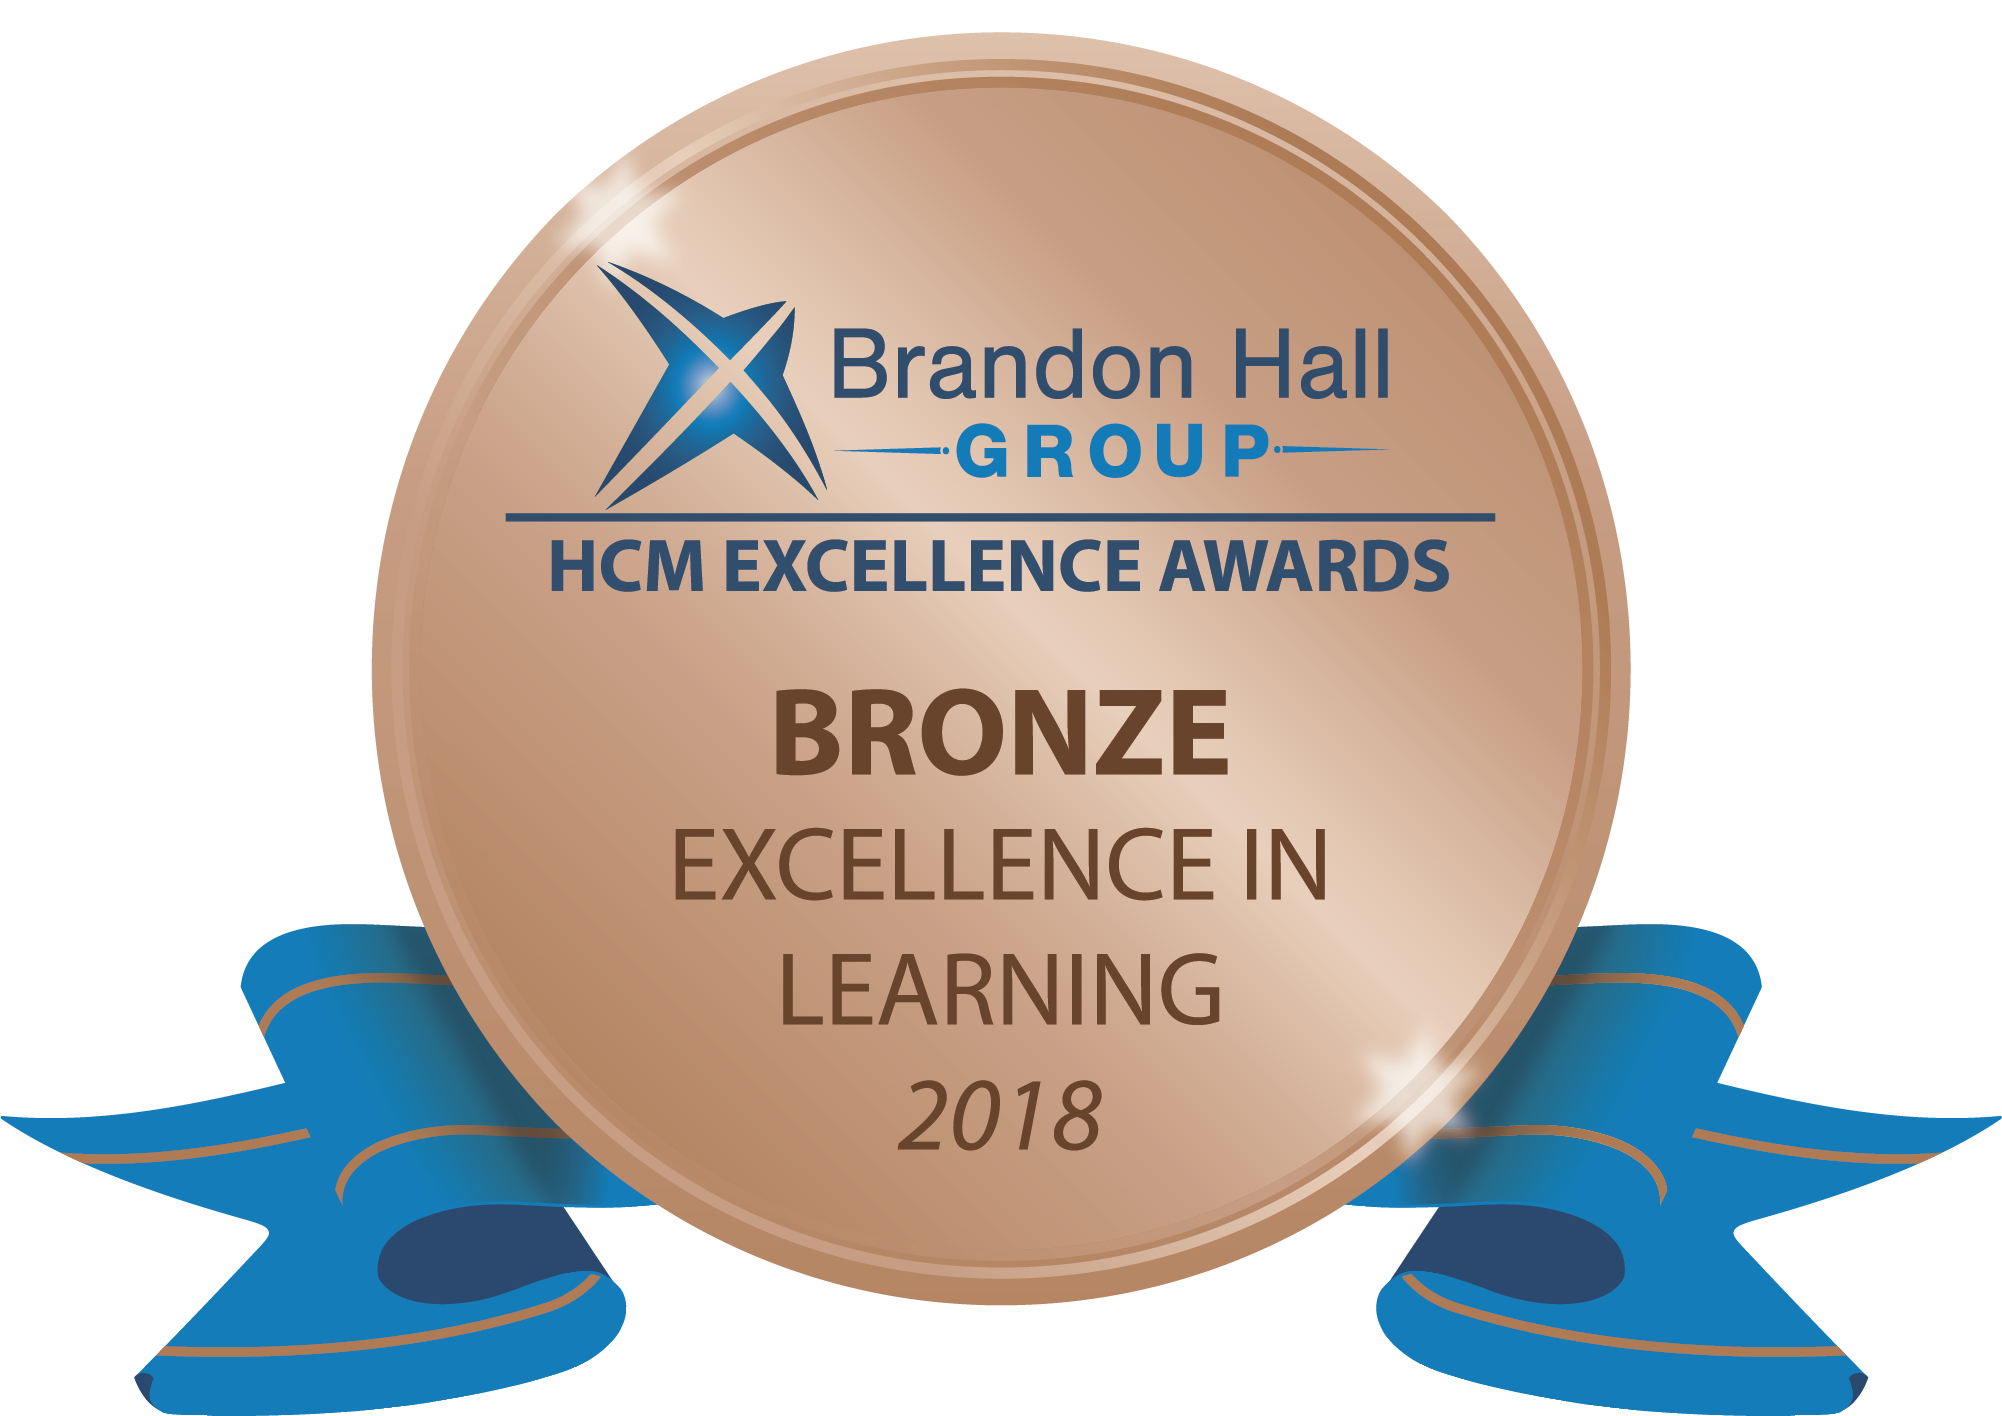 Brandon Hall Group HCM Excellence Awards Bronze Excellence in Learning 2018